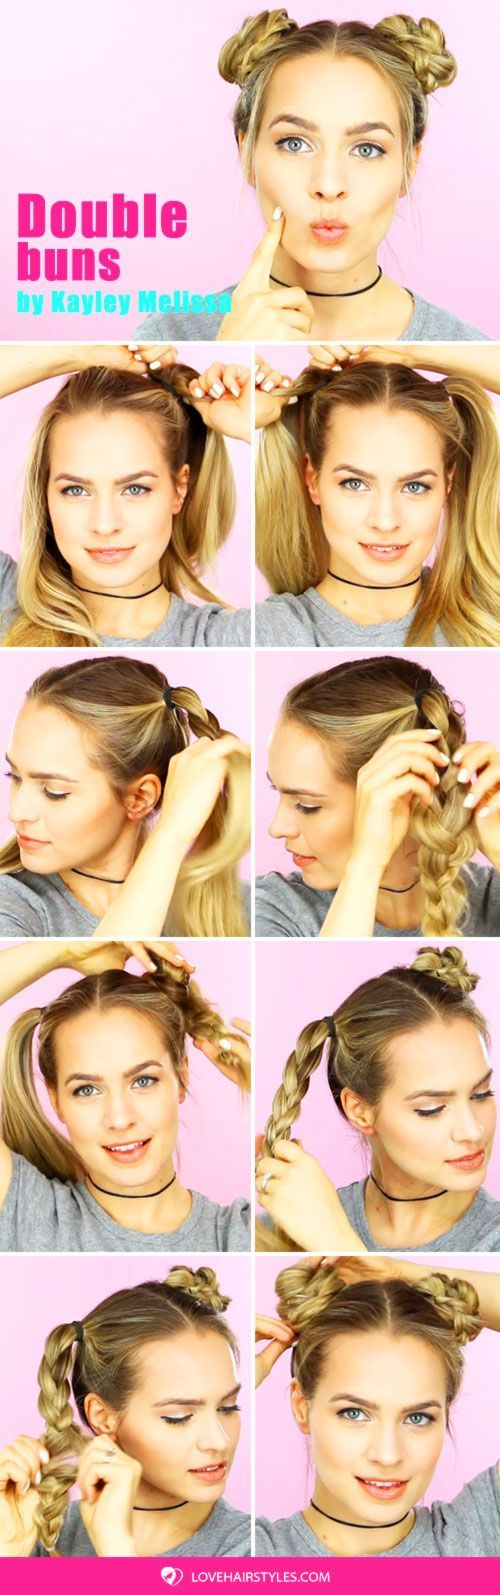 "A Double Buns Updo Tutorial <a class=""pintag"" href=""/explore/hairtutorial/"" title=""#hairtutorial explore Pinterest"">#hairtutorial</a> <a class=""pintag"" href=""/explore/bun/"" title=""#bun explore Pinterest"">#bun</a> <a class=""pintag"" href=""/explore/braids/"" title=""#braids explore Pinterest"">#braids</a> ★ Cute and easy bun hairstyles for short hair, shoulder length or for long hair. Pick a formal one for work or fancy events. ★ See more: <a href=""https://glaminati.com/bun-hairstyles/"" rel=""nofollow"" target=""_blank"">glaminati.com/…</a> <a class=""pintag"" href=""/explore/glaminati/"" title=""#glaminati explore Pinterest"">#glaminati</a> <a class=""pintag"" href=""/explore/lifestyle/"" title=""#lifestyle explore Pinterest"">#lifestyle</a><p><a href=""http://www.homeinteriordesign.org/2018/02/short-guide-to-interior-decoration.html"">Short guide to interior decoration</a></p>"